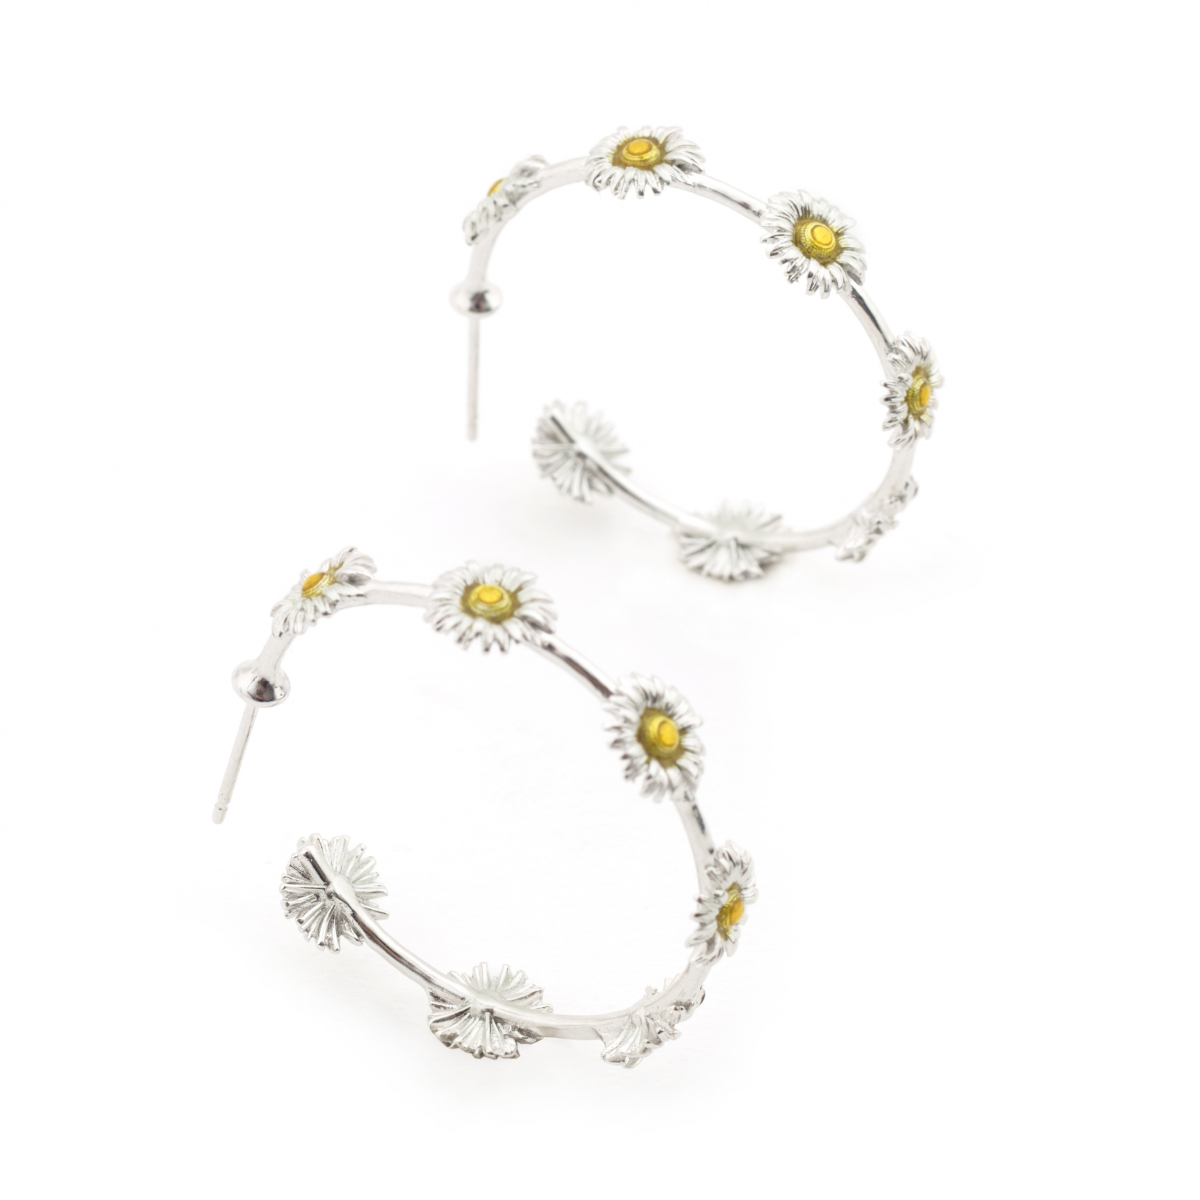 Daisy Hoop Earrings - Rhodium